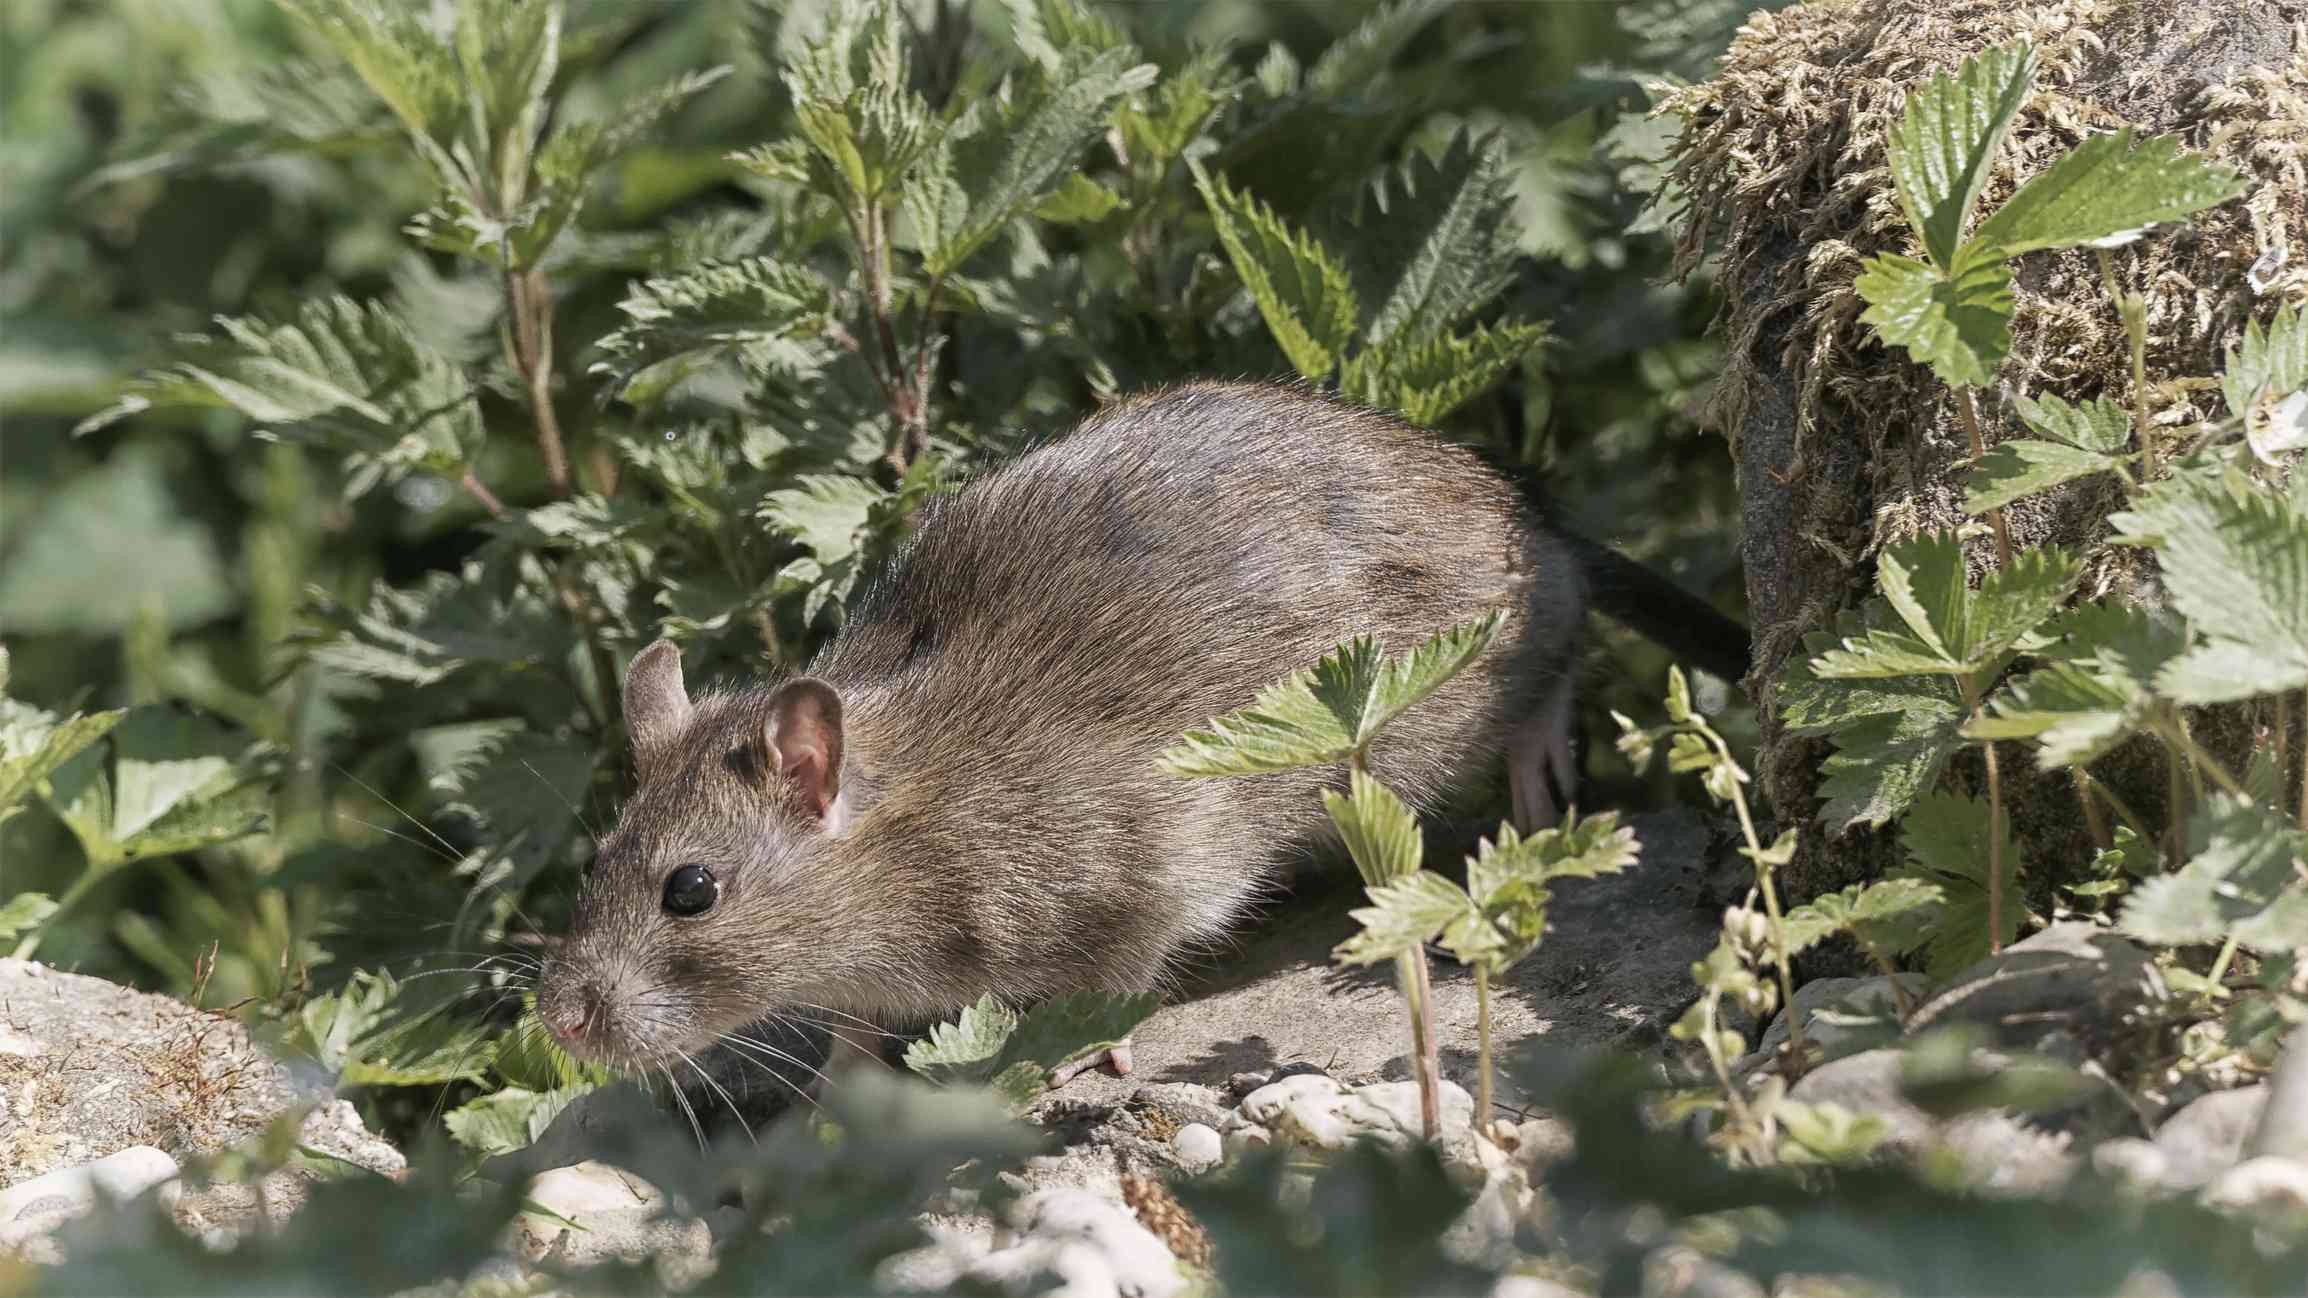 A brown rat surrounded by small green plants